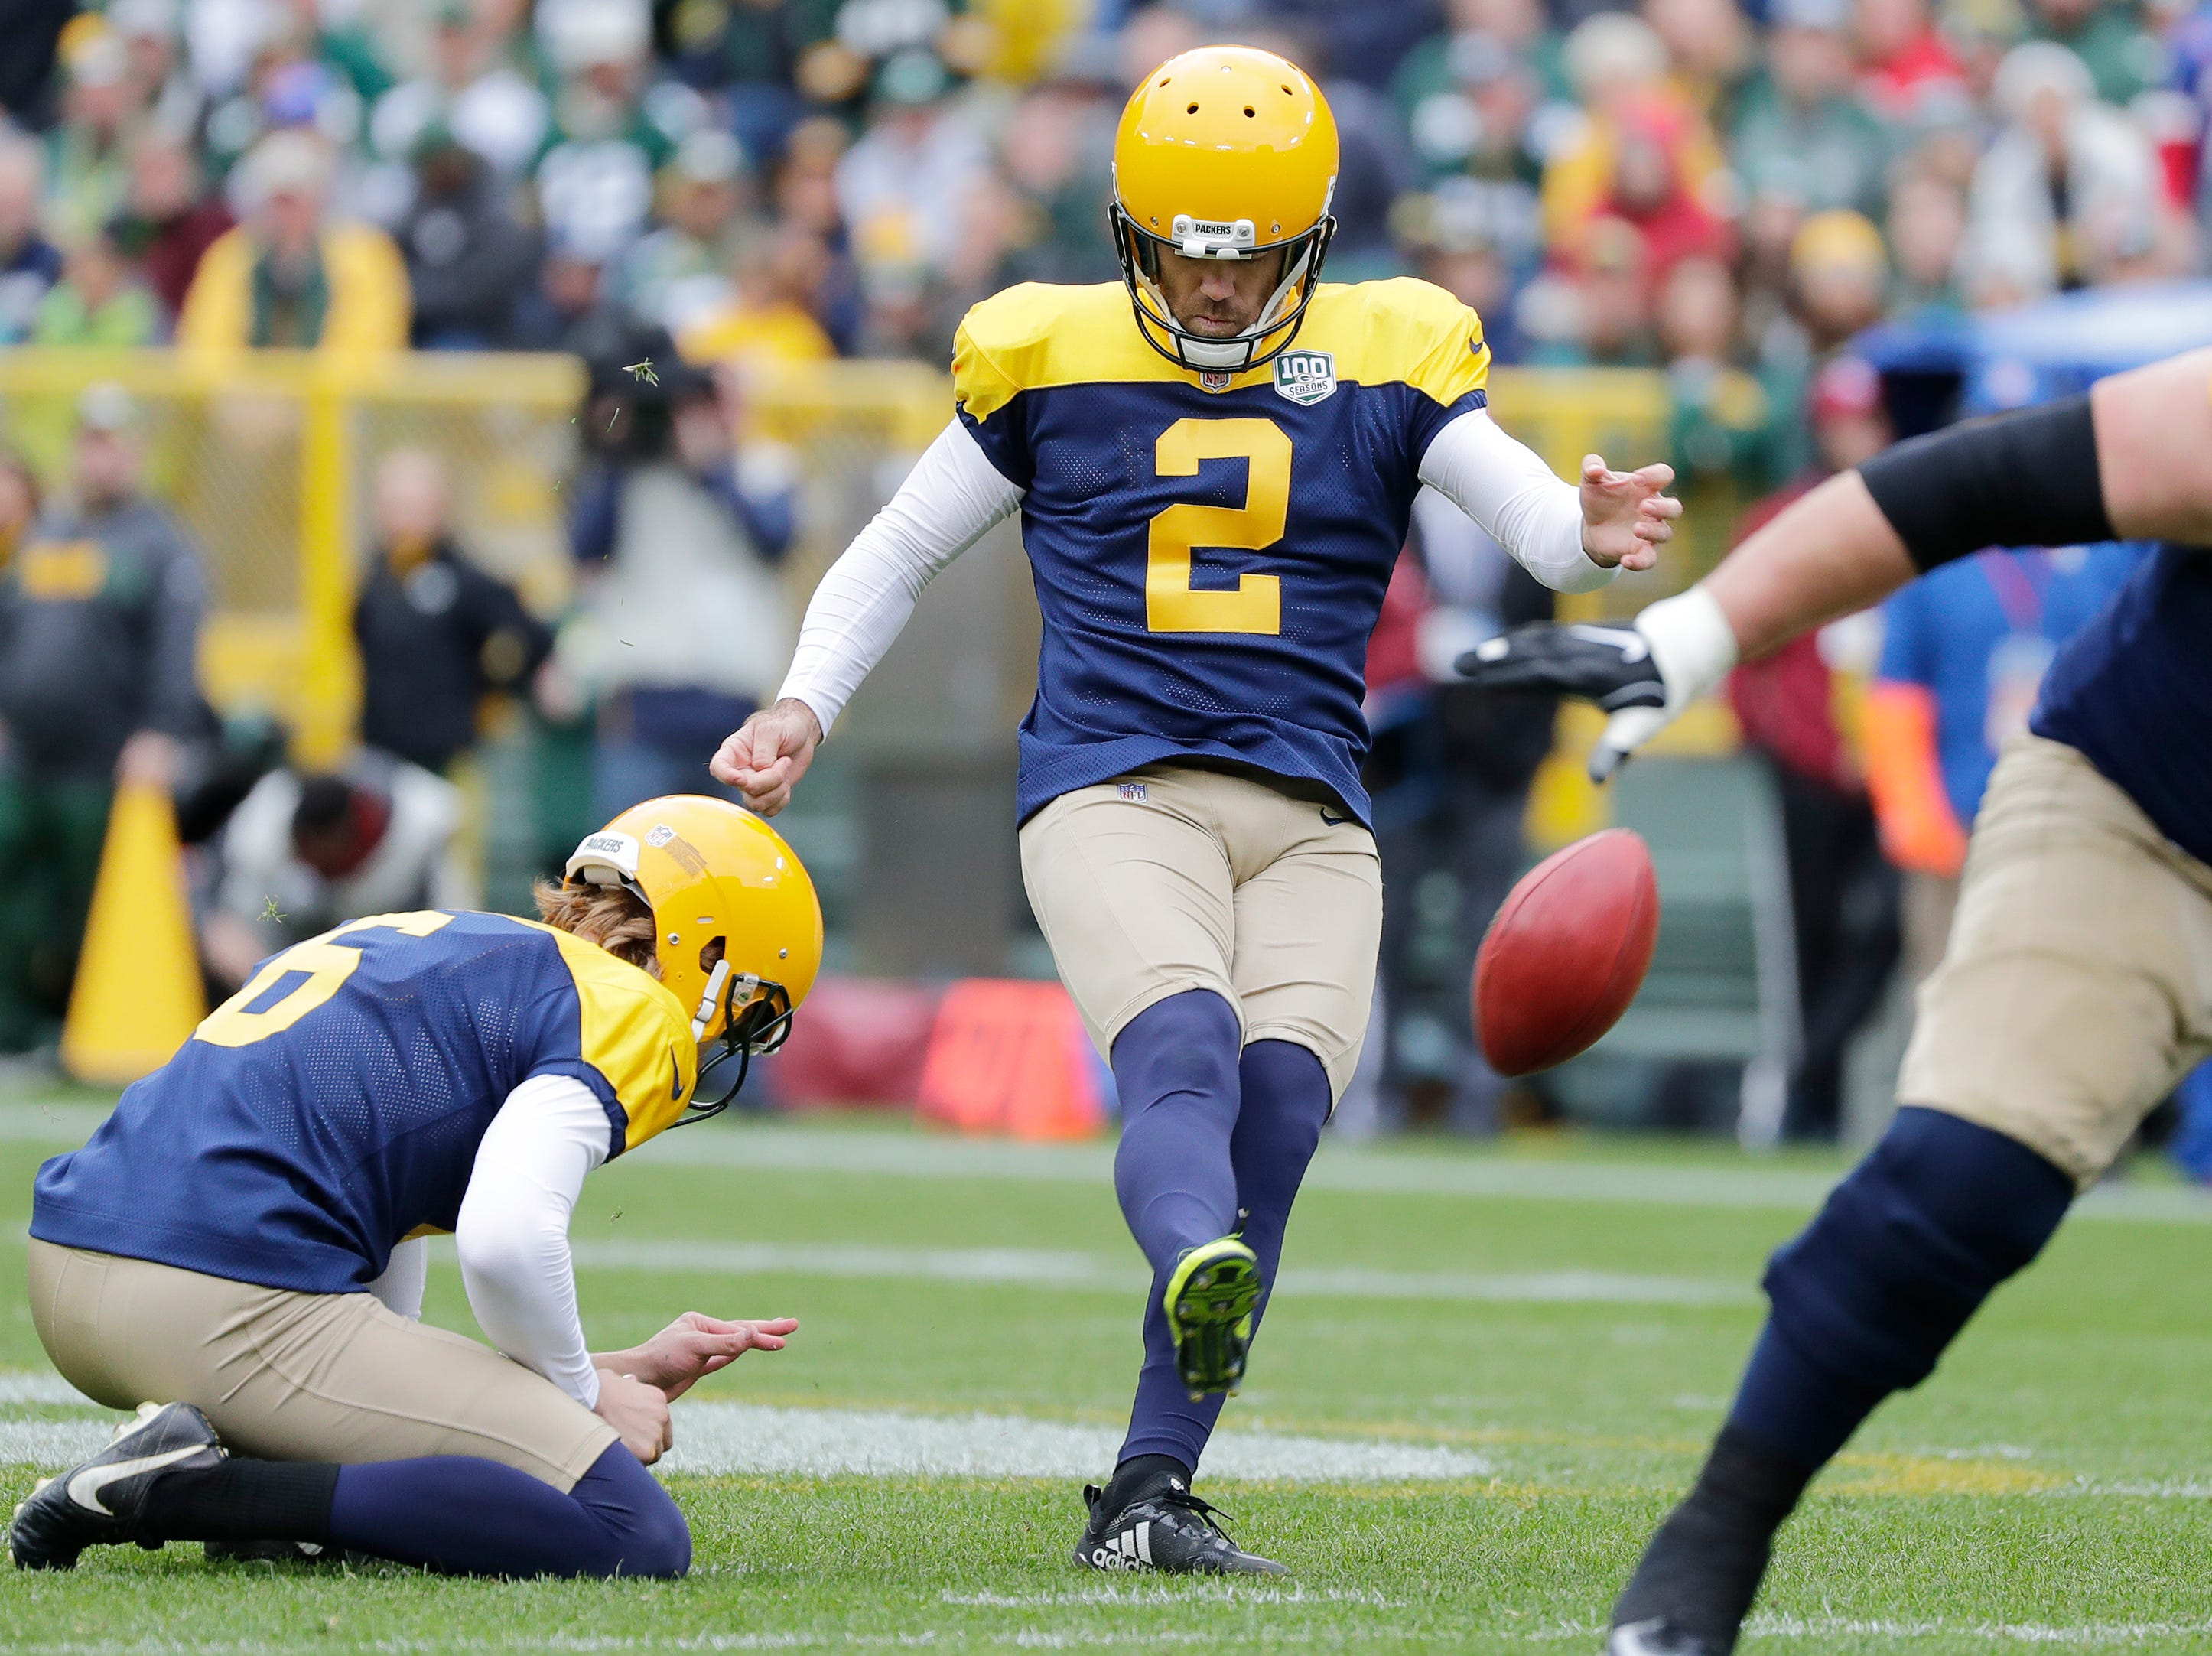 Green Bay Packers kicker Mason Crosby (2) kicks a field goal in the fourth quarter against the Buffalo Bills at Lambeau Field on Sunday, September 30, 2018 in Green Bay, Wis.Adam Wesley/USA TODAY NETWORK-Wisconsin